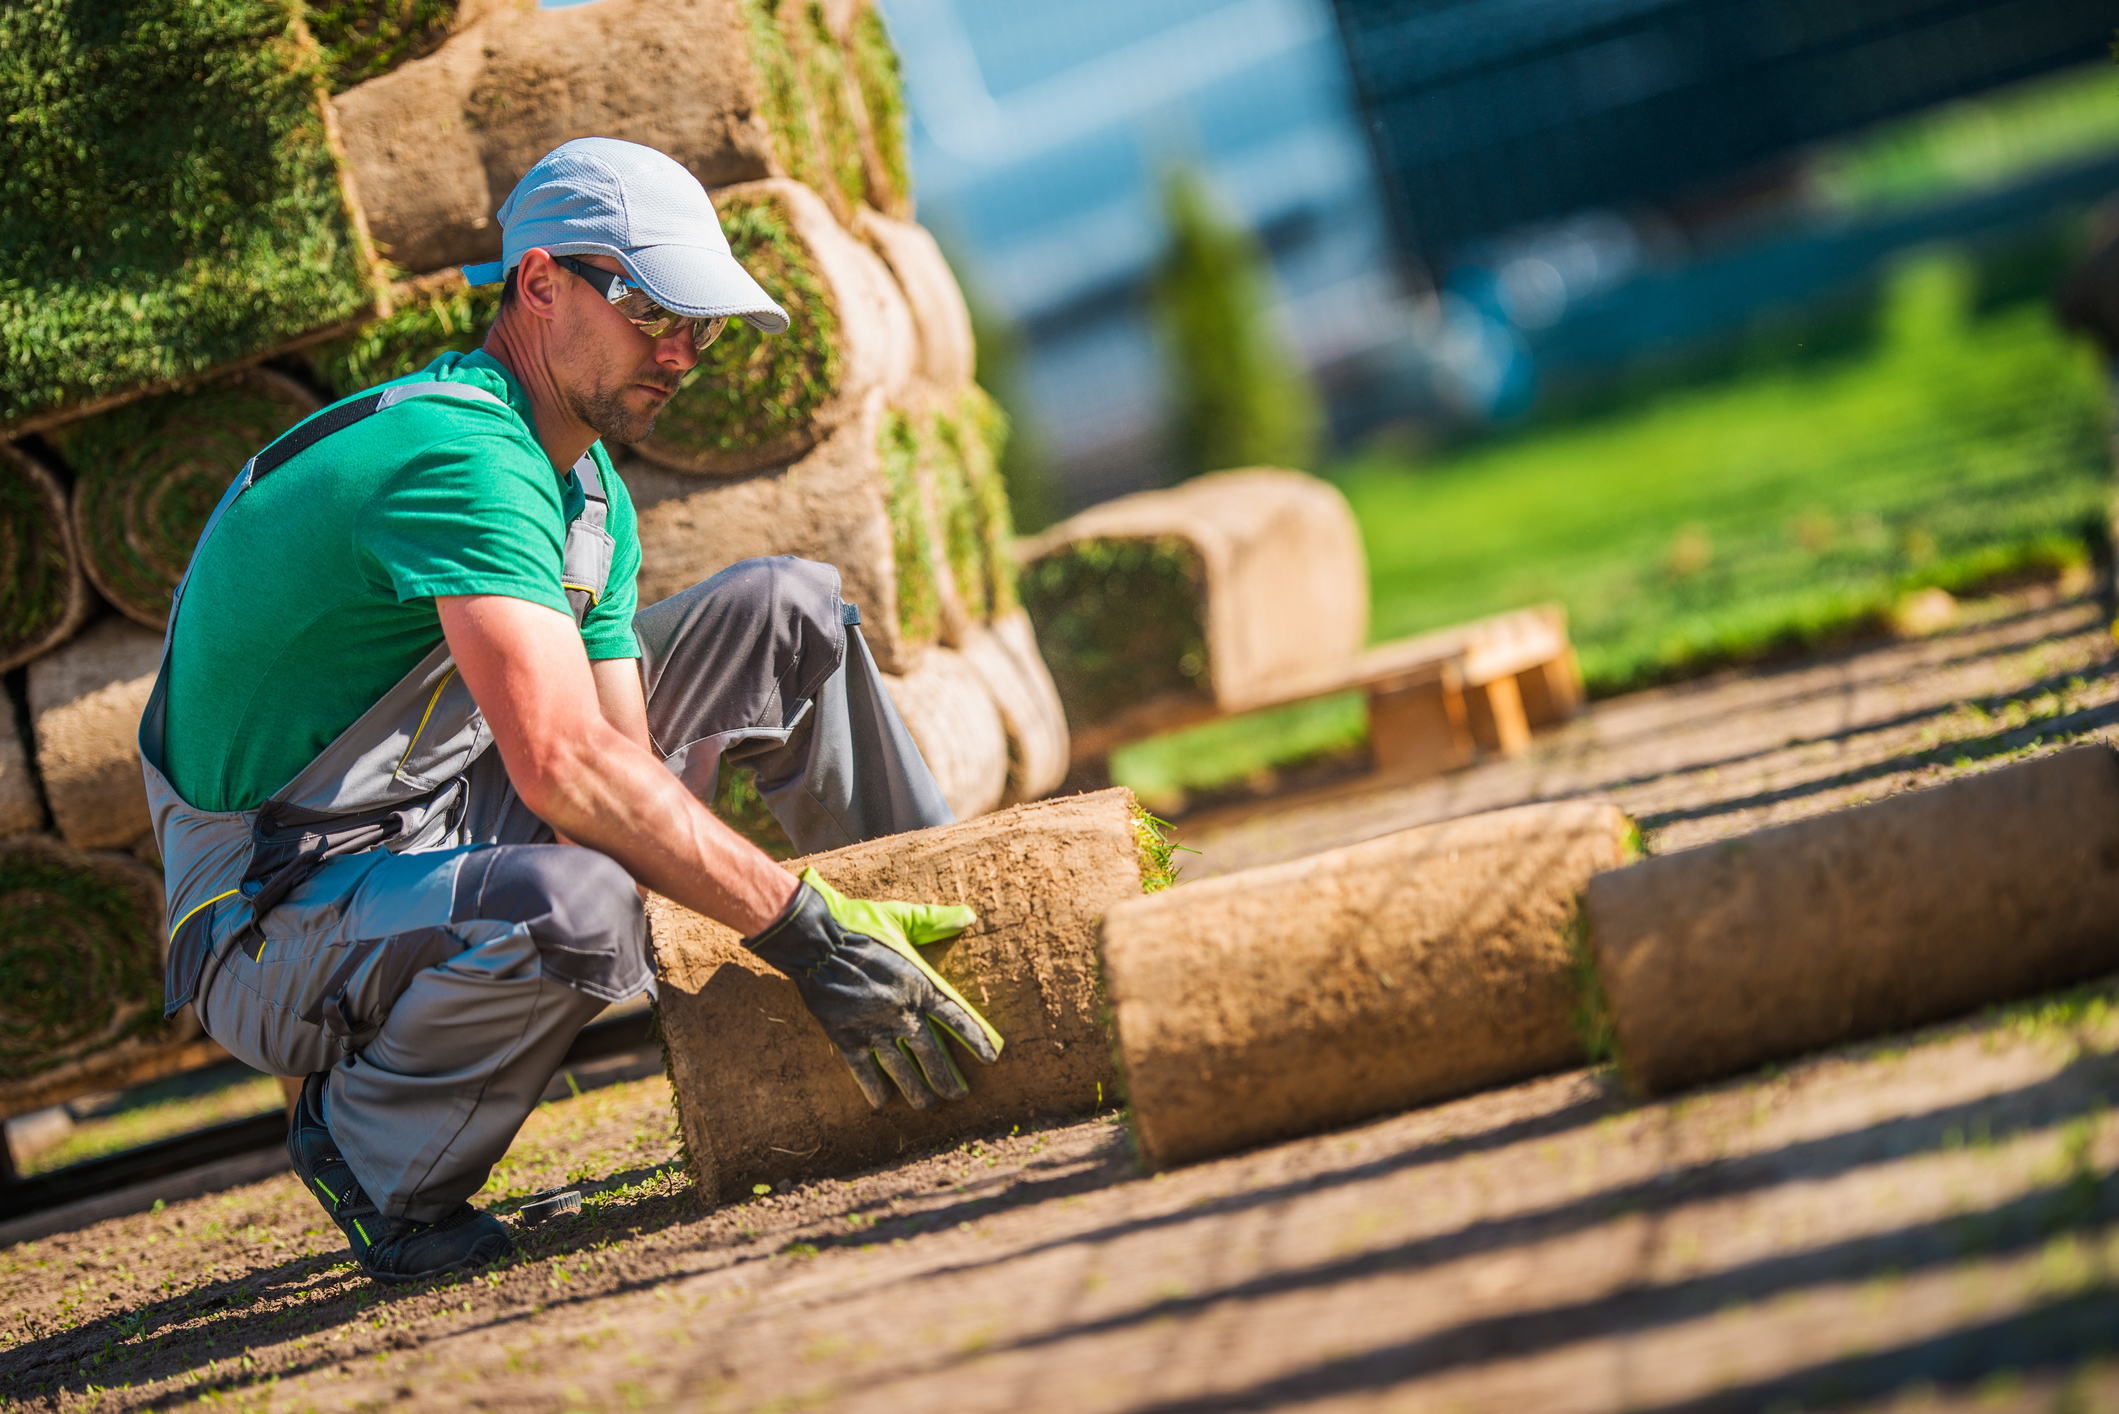 How to Get Landscaping Clients: 7 Ideas to Help Your Business Thrive